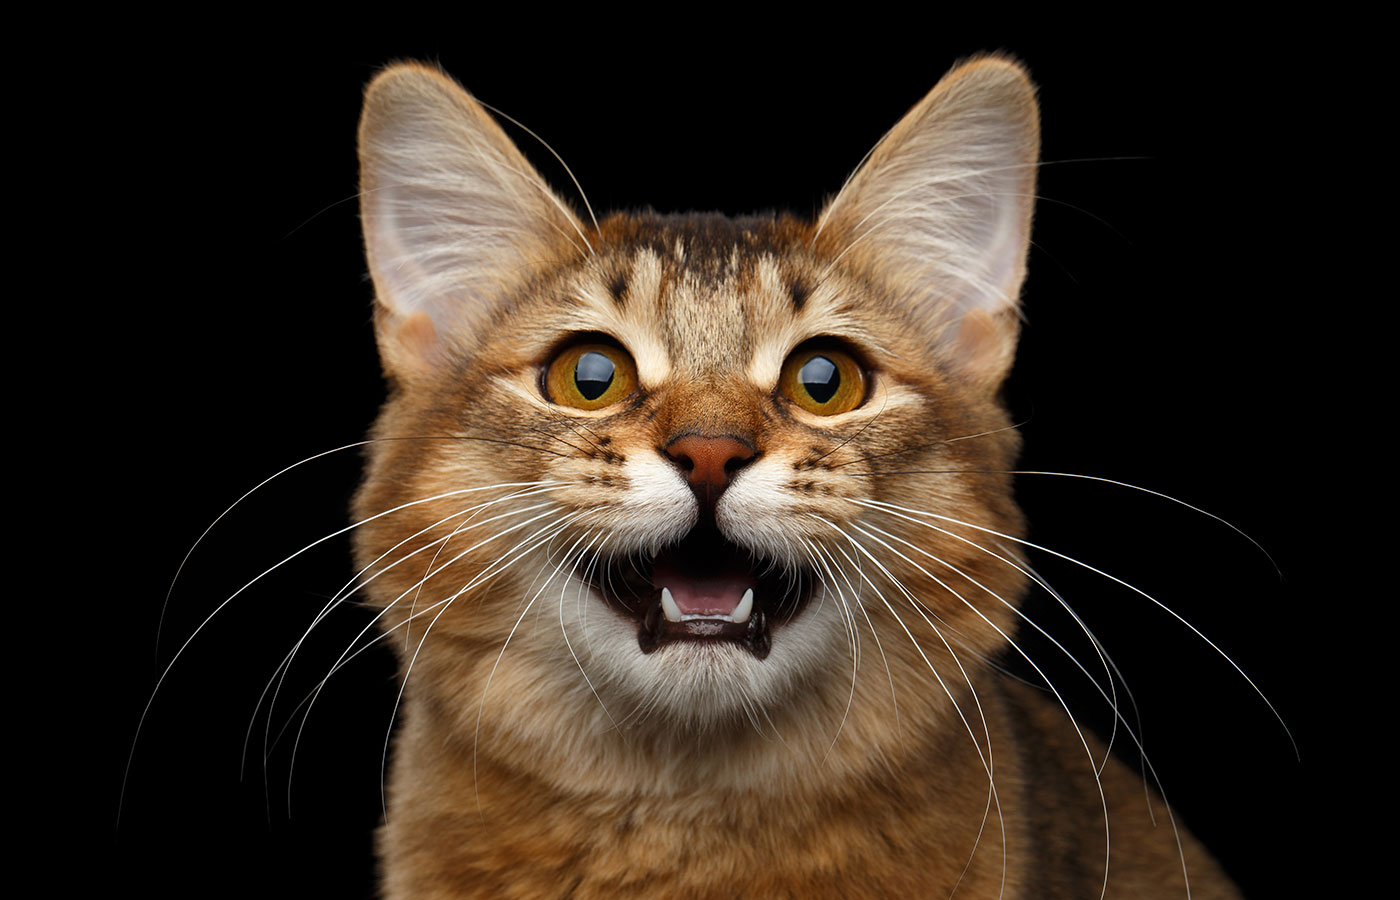 Close-up Portrait of meowing orange Somali kitty looking in camera on isolated black background - Image